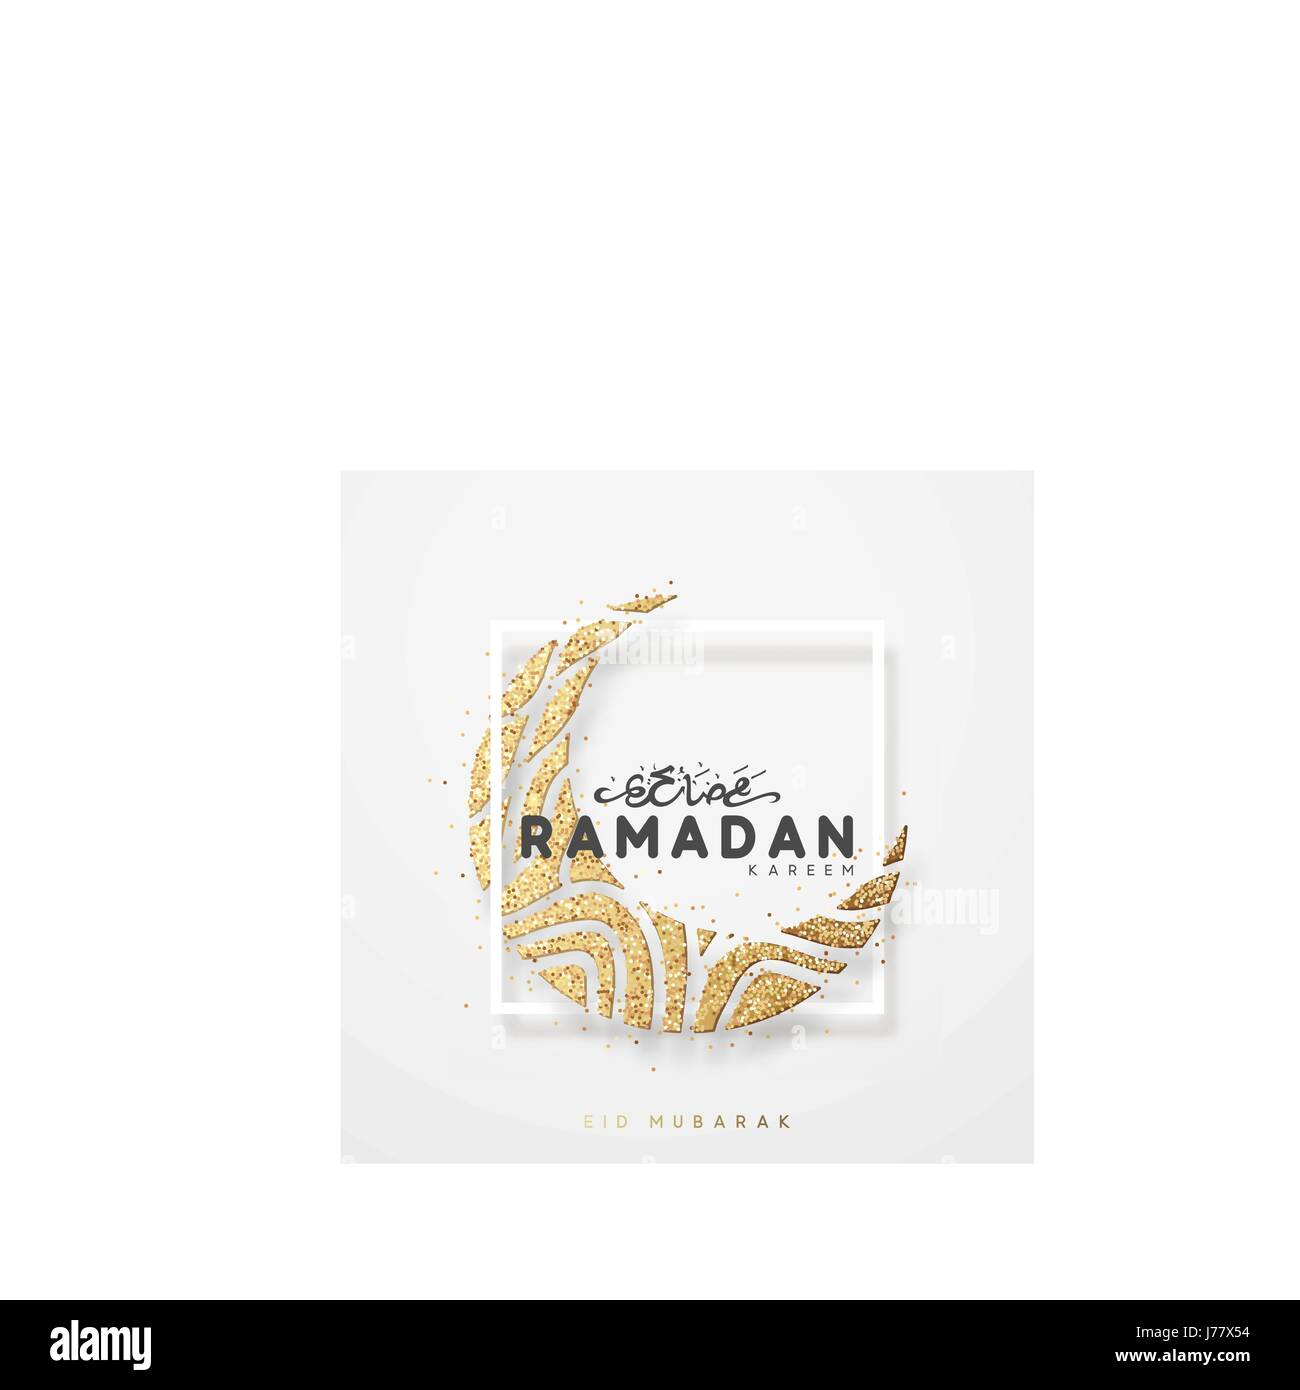 Month ramadan greeting card with arabic calligraphy ramadan kareem month ramadan greeting card with arabic calligraphy ramadan kareem m4hsunfo Image collections